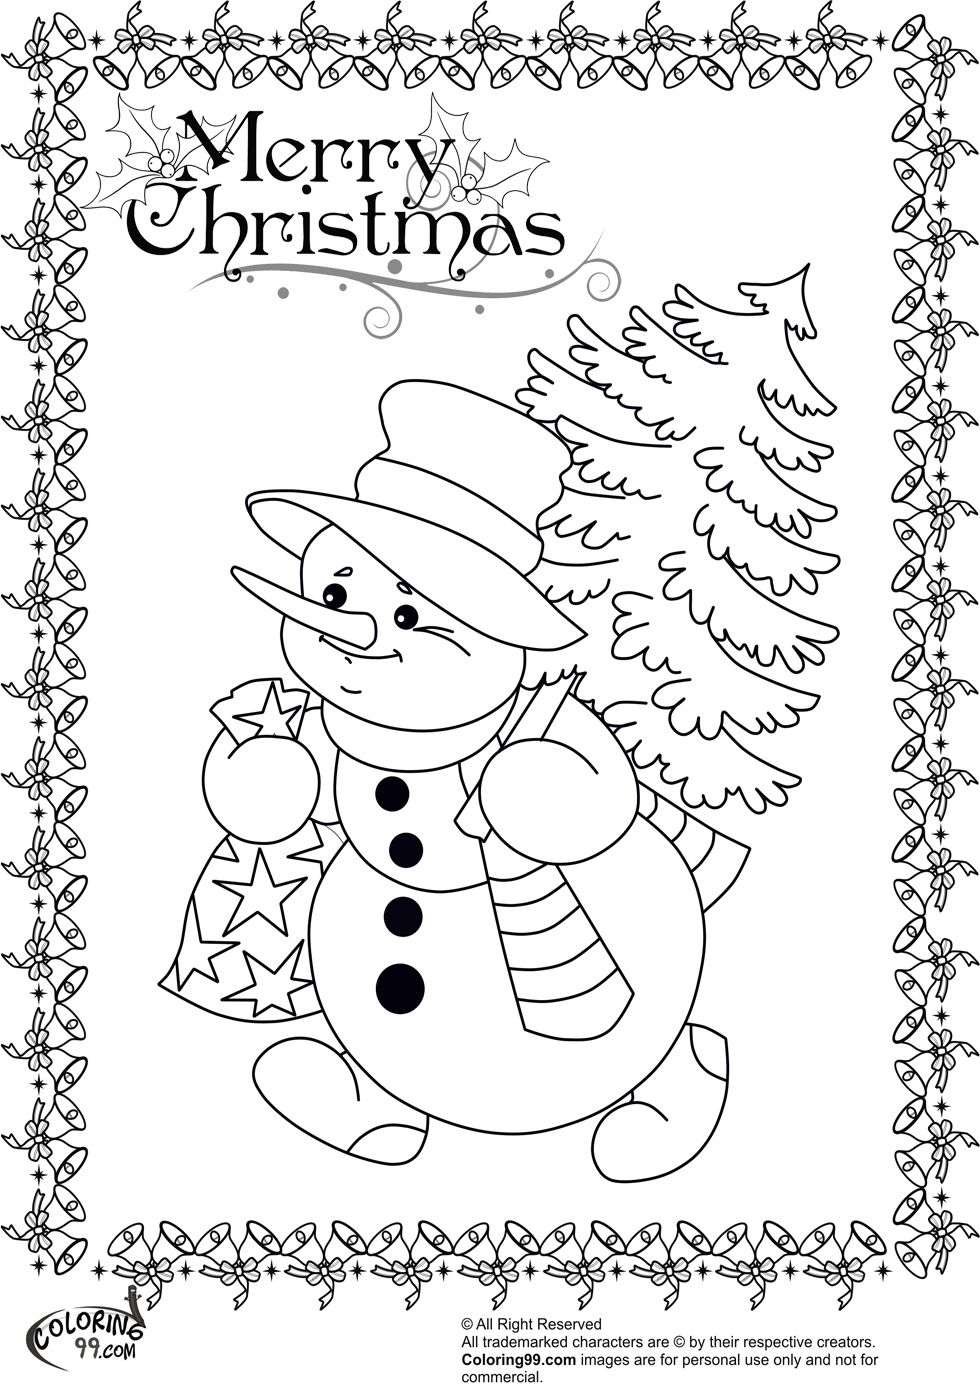 Snowman pictures to color yahoo image search results mooshius